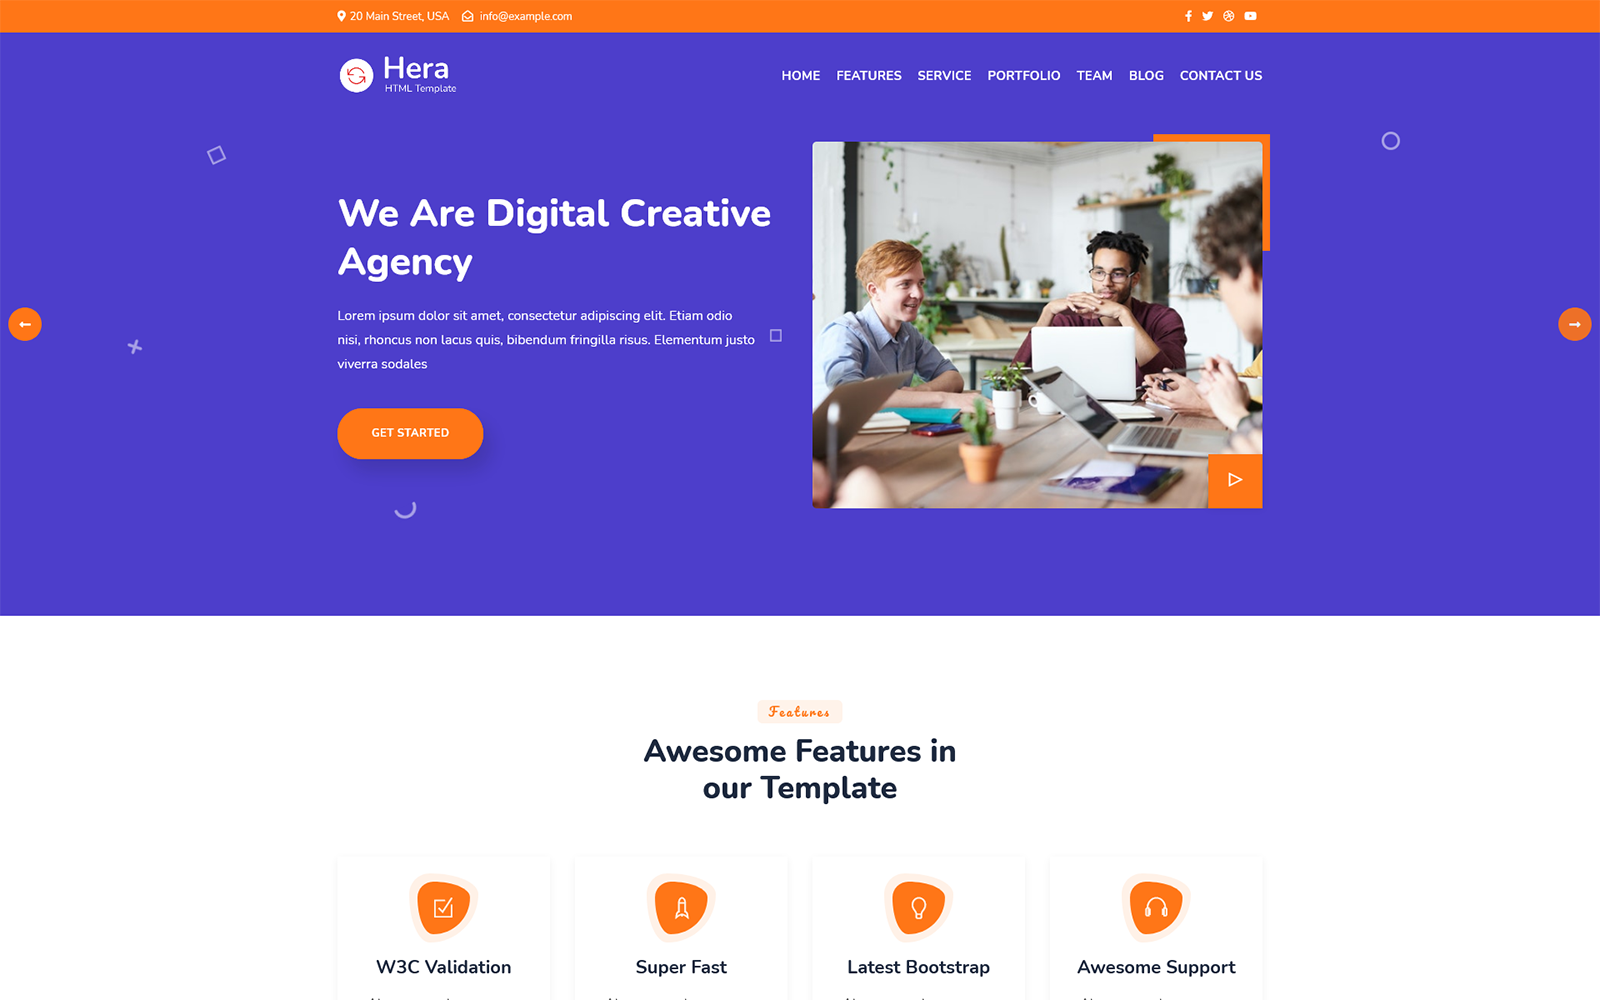 Hera - Digital Agency One Page HTML Landing Page Template